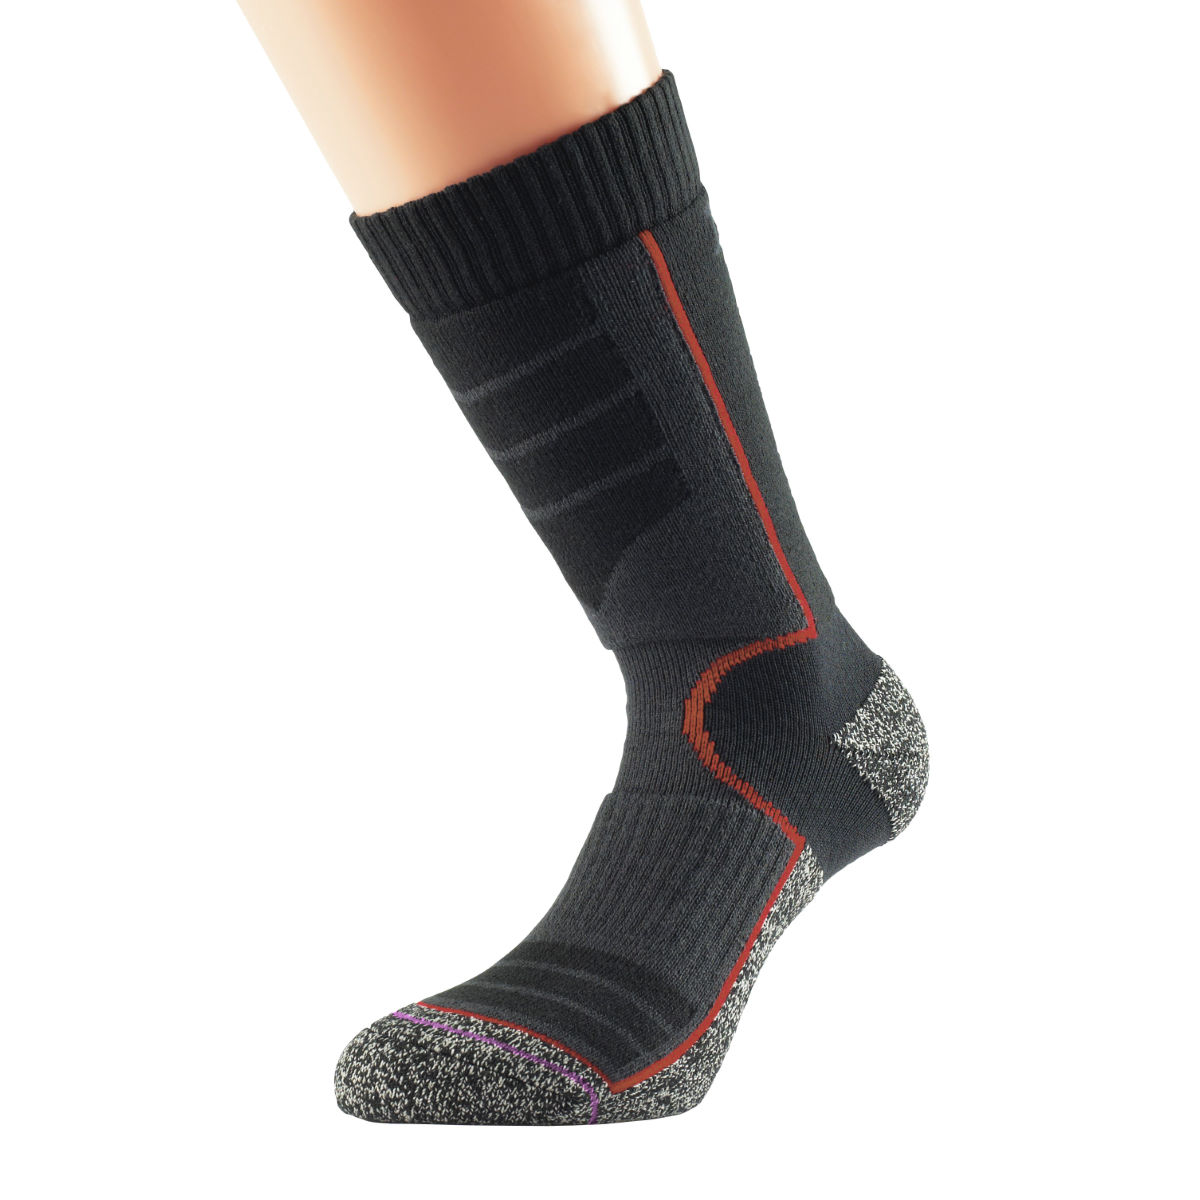 Chaussettes Femme 1000 Mile Ultra Performance (randonnée, Cupron) - S Noir Chaussettes de randonnée